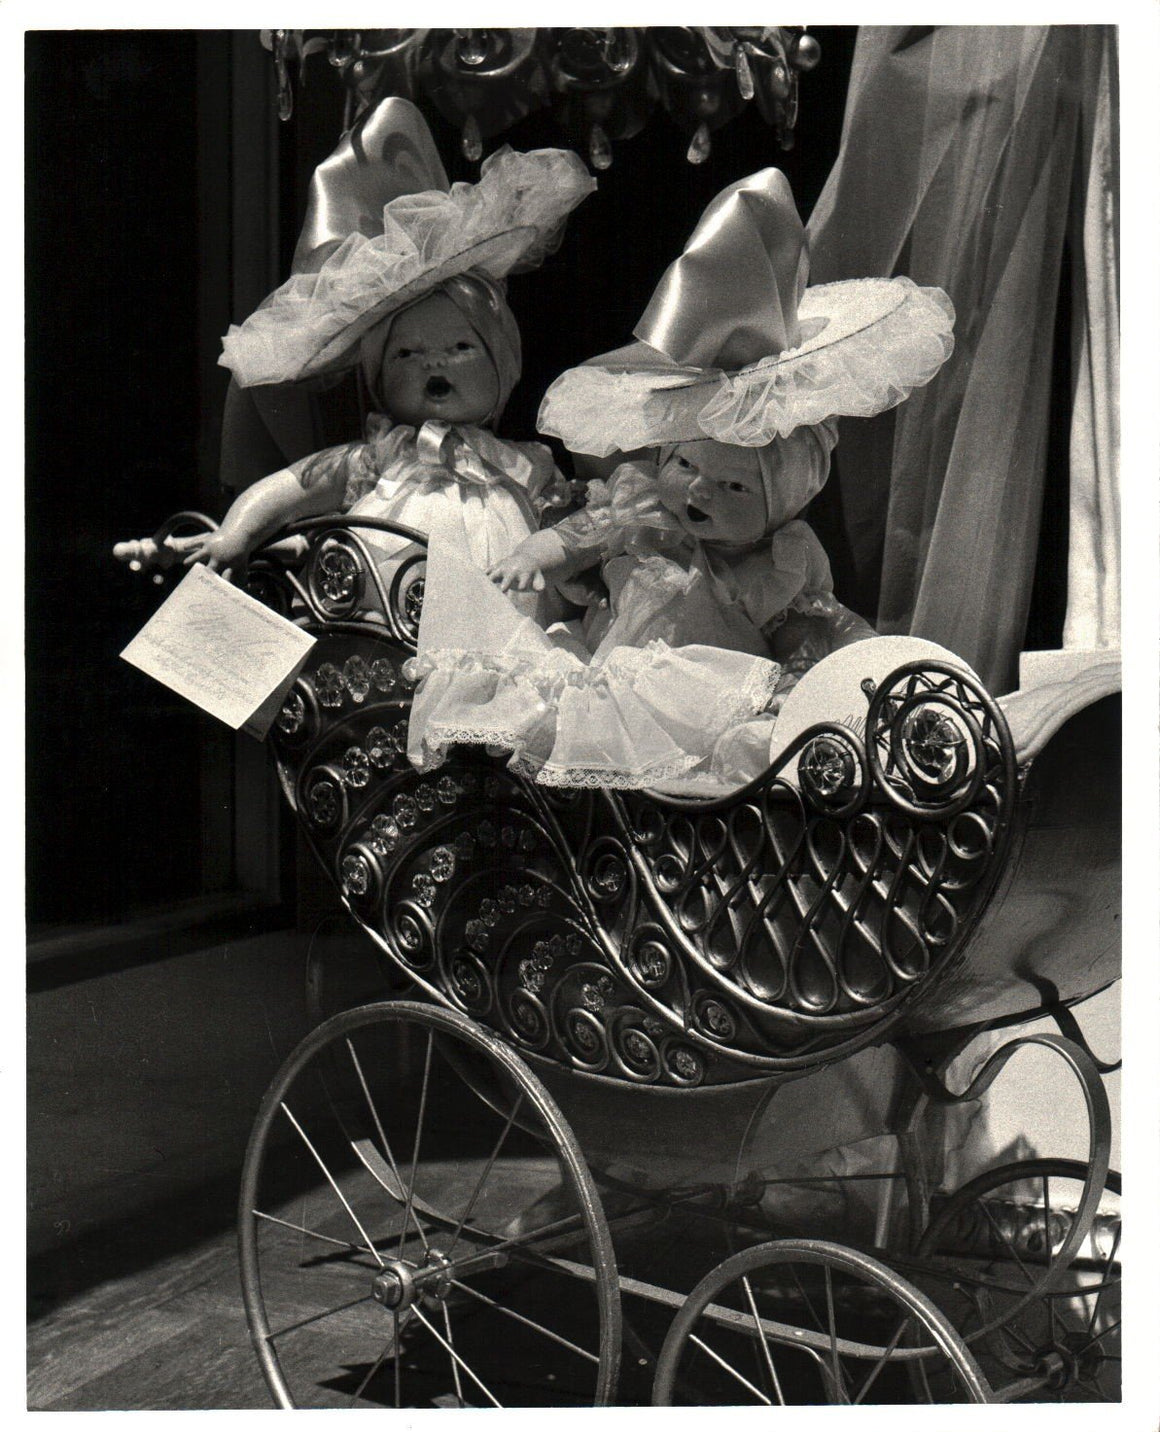 1951 Dolls in Baby Carriage John Fredericks NYC Fifth Avenue Photo